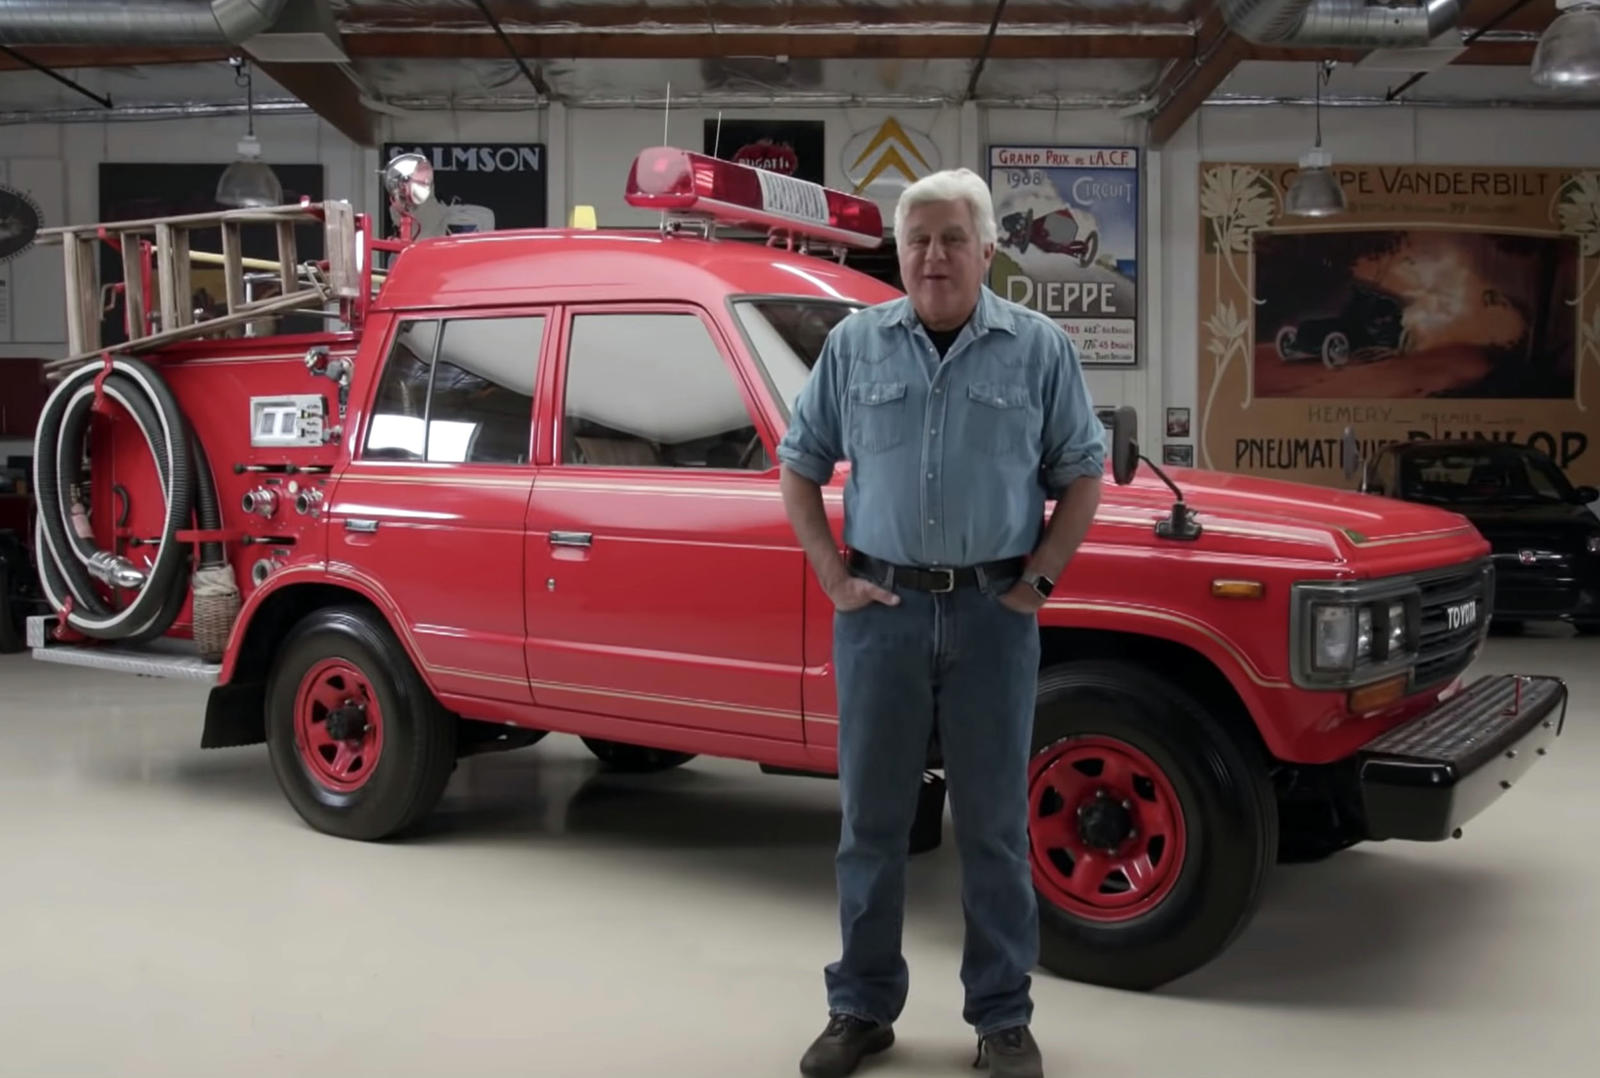 Garage Volkswagen Dieppe Jay Leno Loves This Japanese Fire Truck Carbuzz